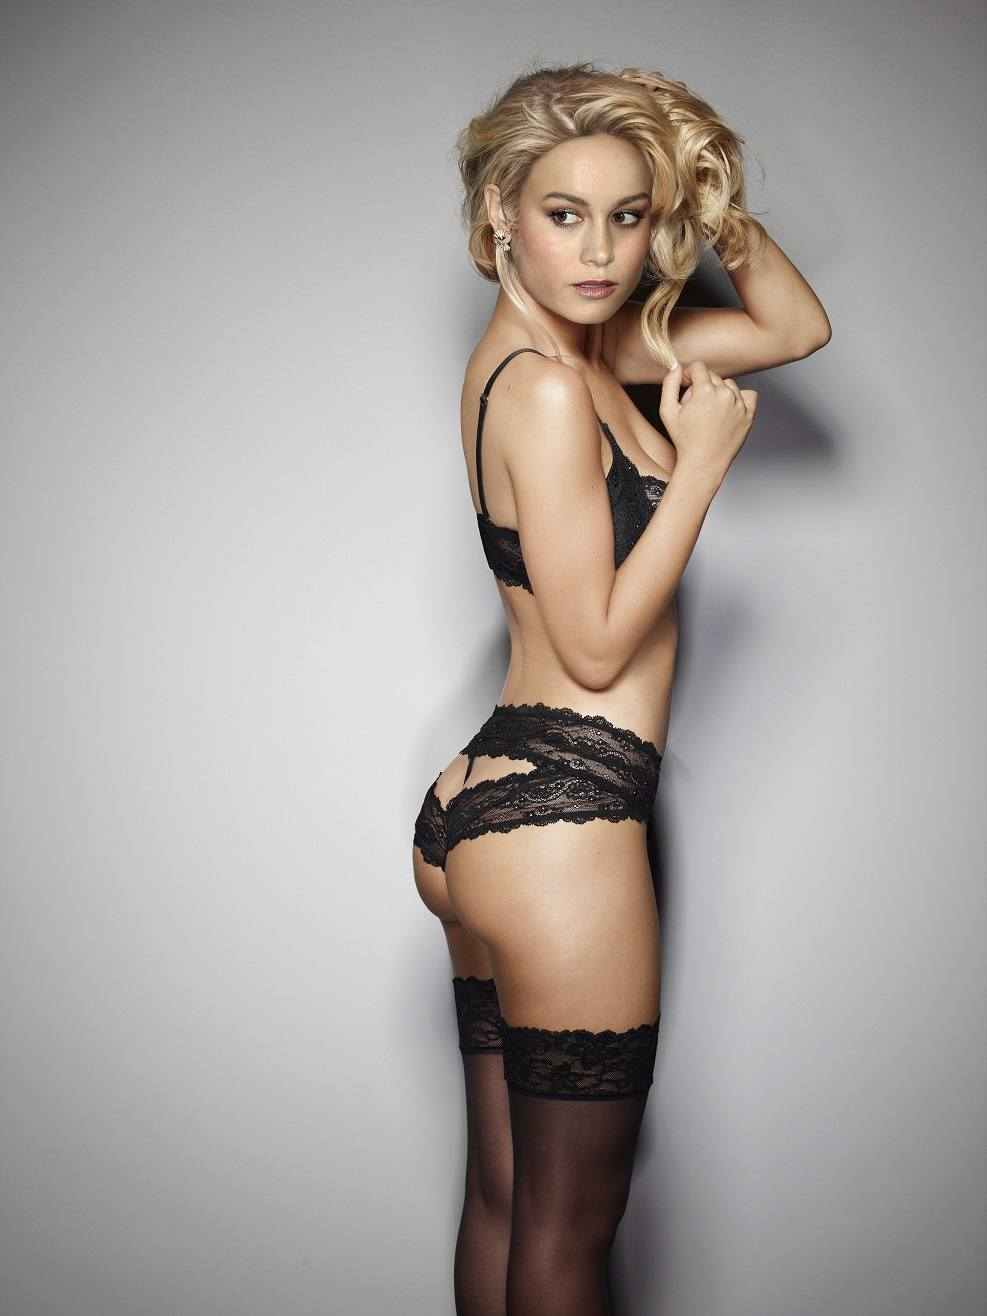 Brie Larson Hottest Photos in Bra, Lingerie